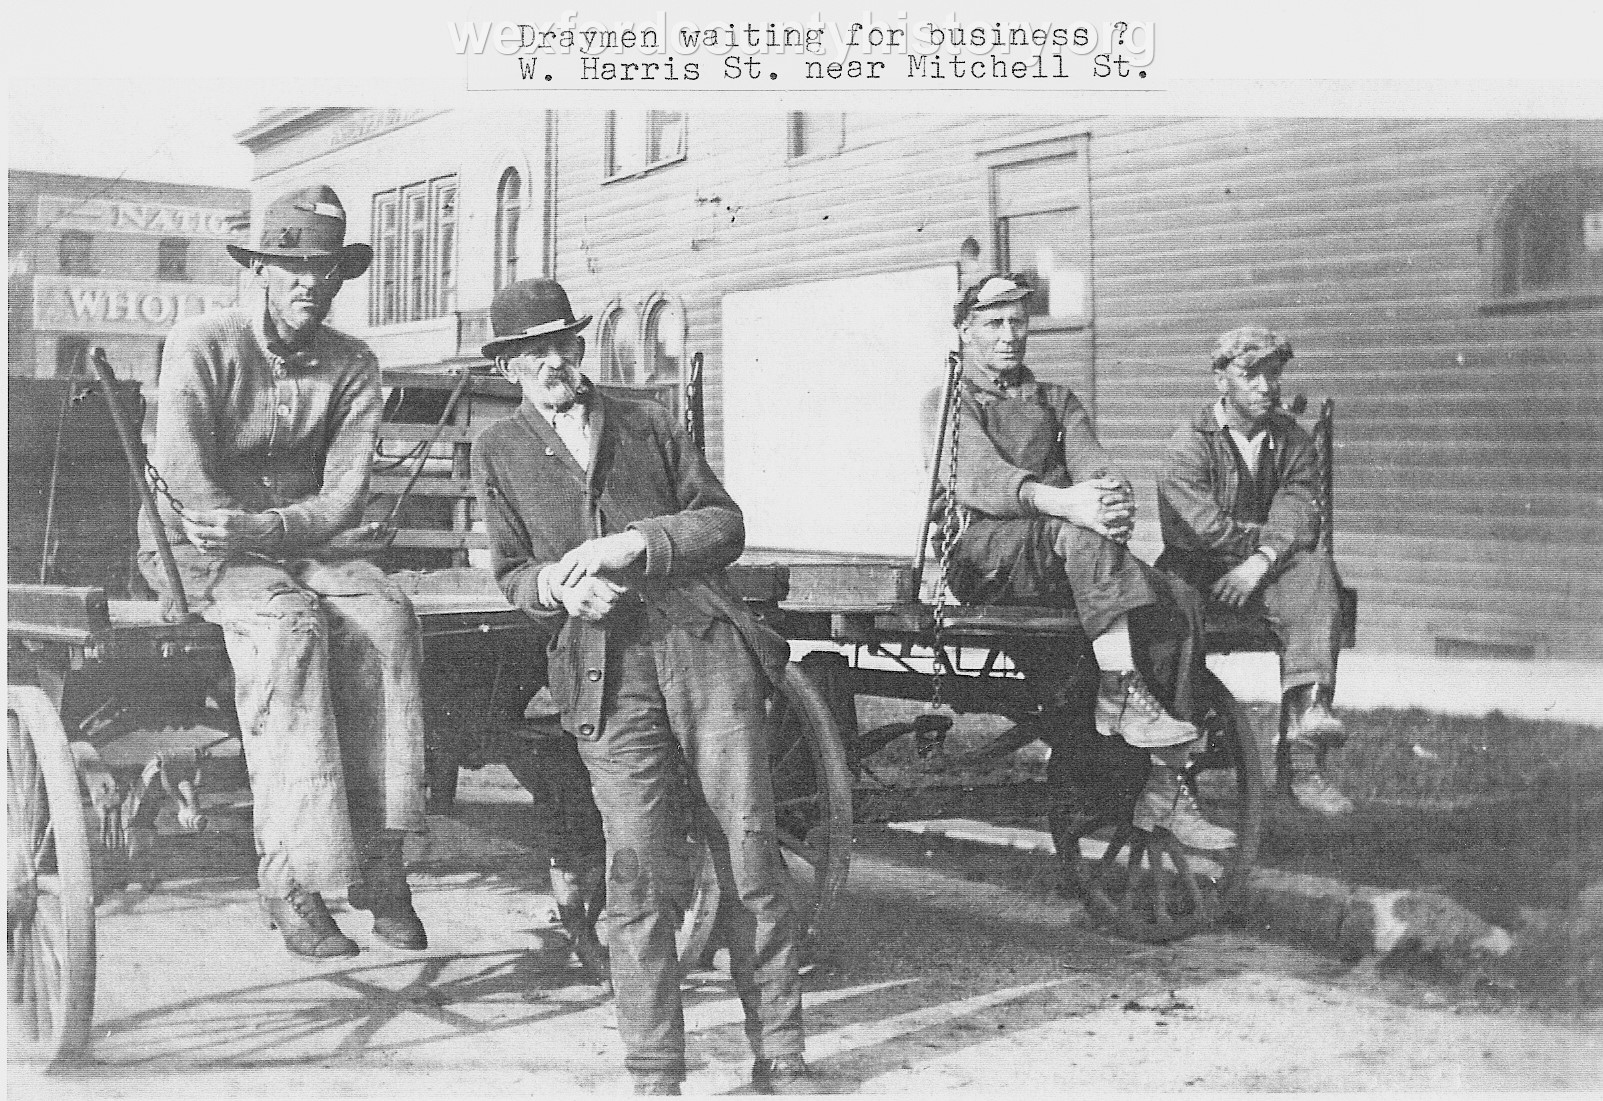 Draymen Awaiting Assignment Near The Corner Of West Harris Street and Mitchell Street